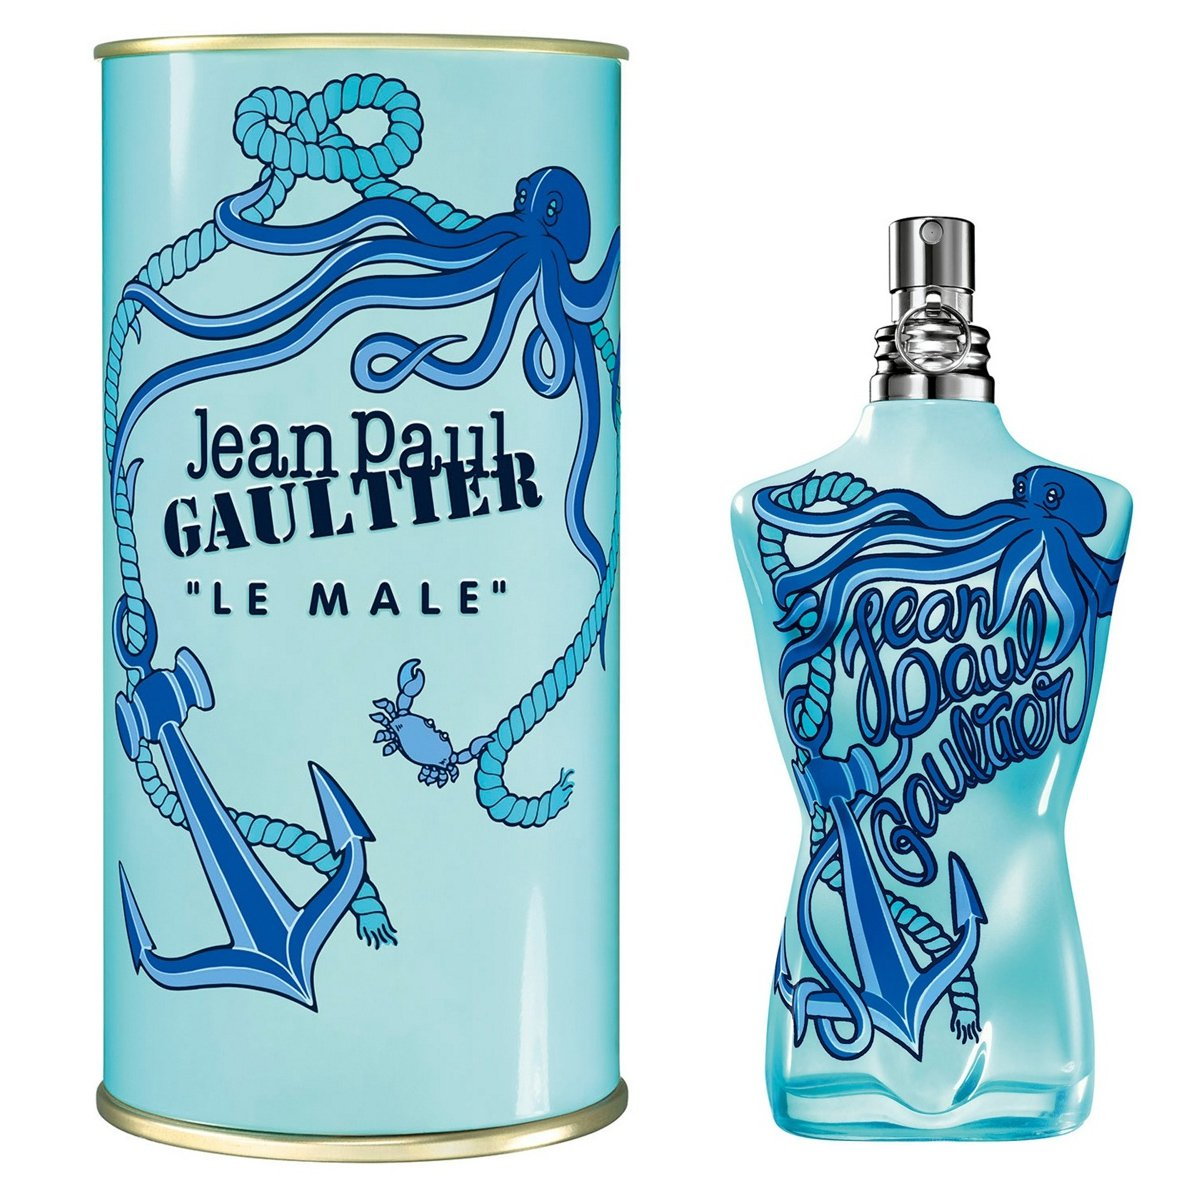 Jean Paul Gaultier Le Male Cologne Tonique Spray, 4.2 Ounces 1JH2759 050611